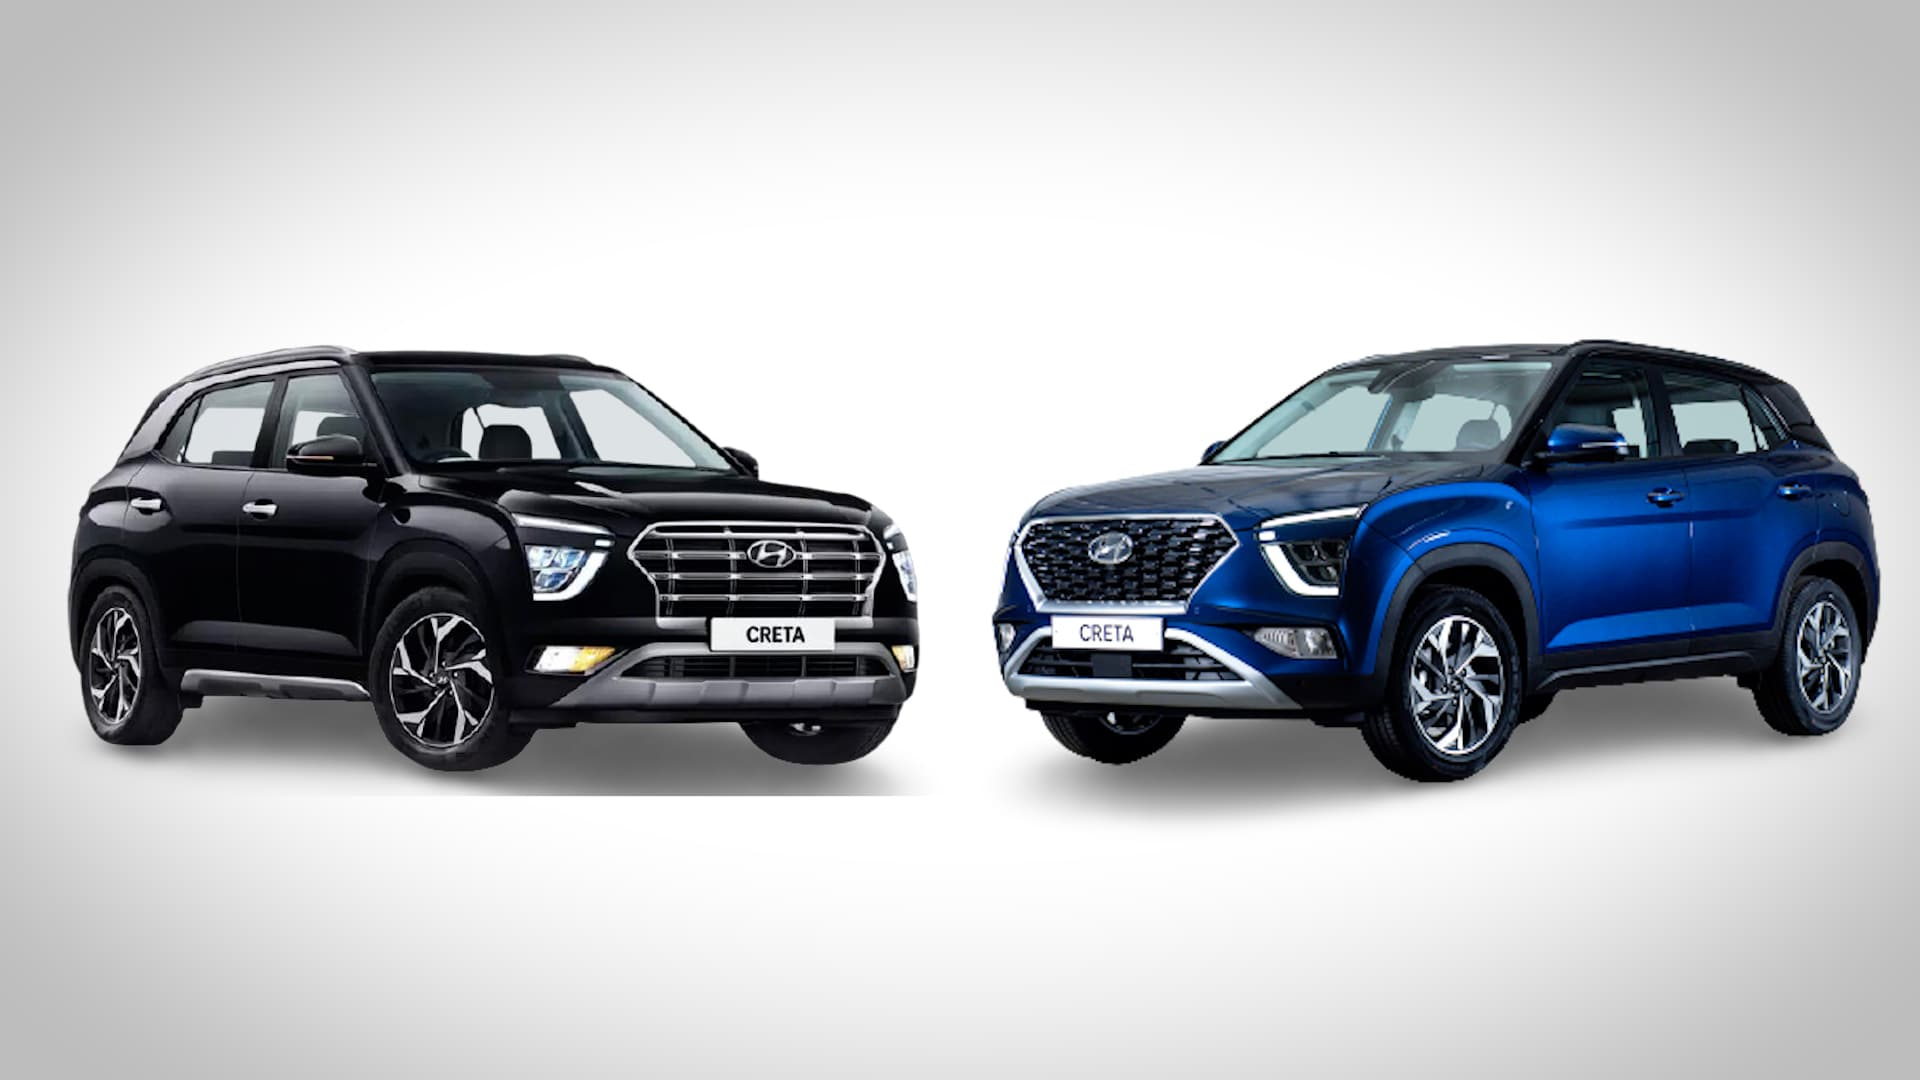 Hyundai Creta SUV currently available in India (left) may soon be replaced by the 2022 Creta unveiled in Russia (right). It may also carry some of the other features that are now available in the Alcazar SUV as well. Detailed specification of the 2022 Creta will be announced later.